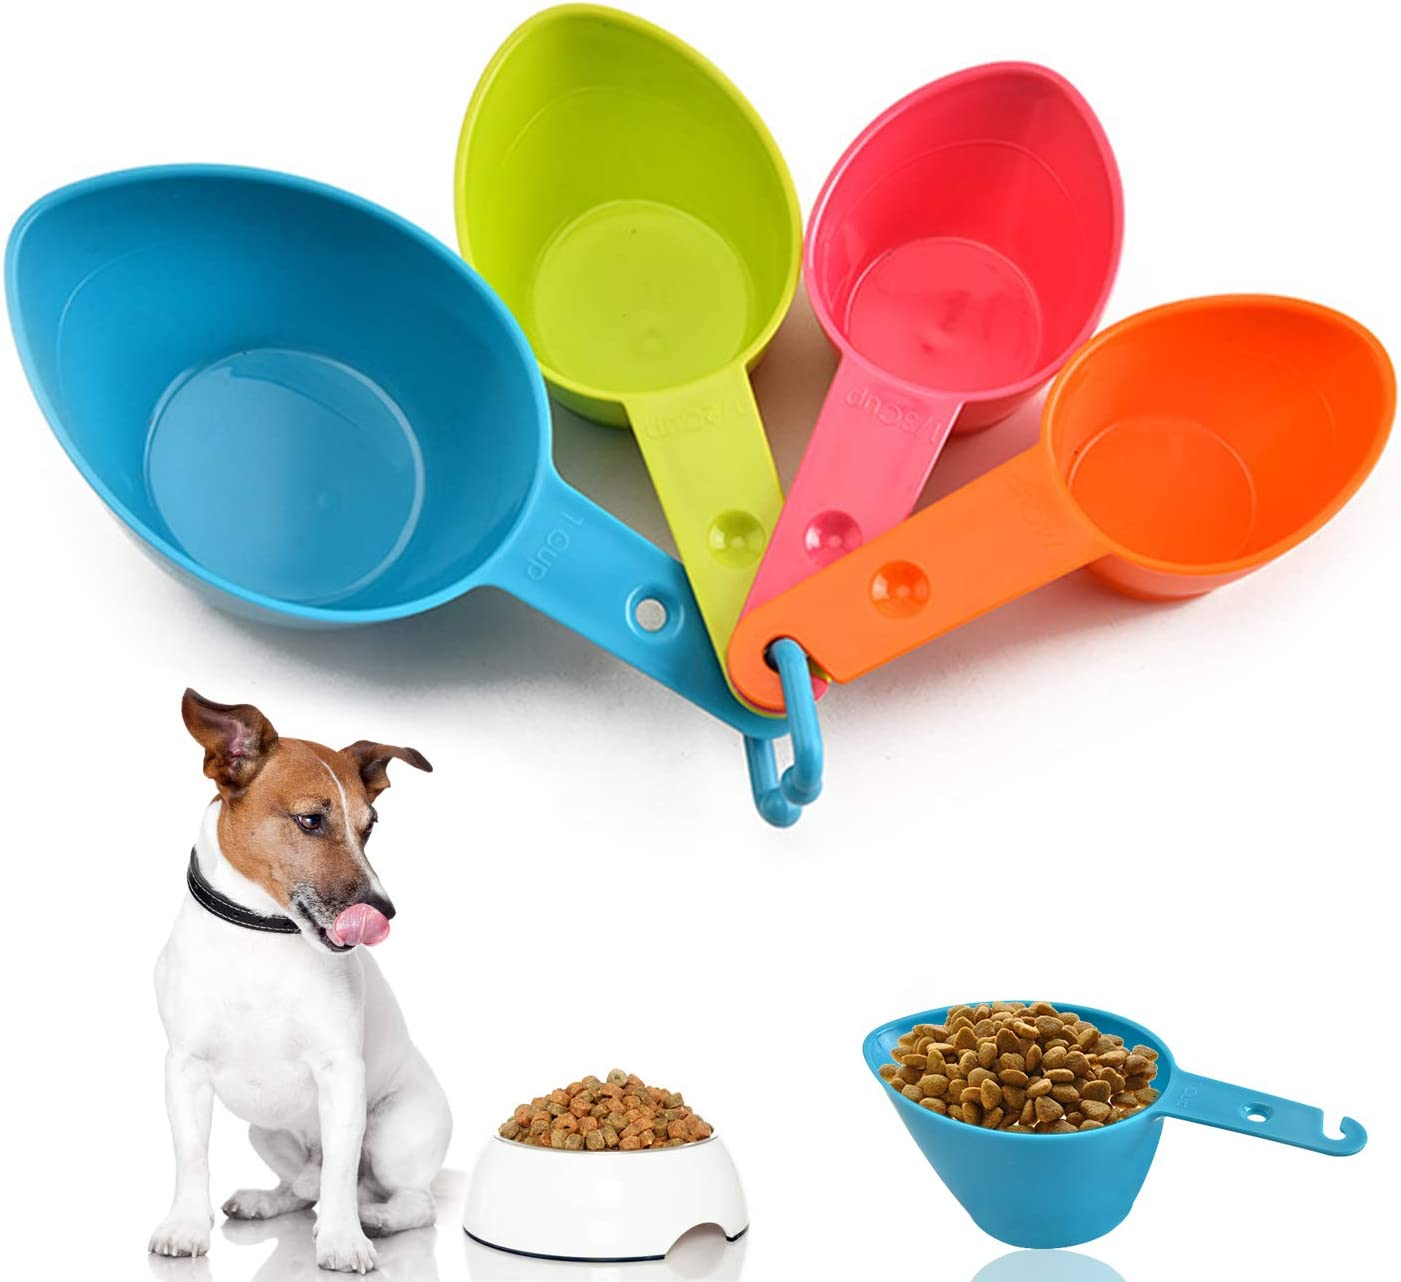 Lainrrew Pet Food Scoop, Plastic Measuring Cup Set Utility Kitchen Scoops for Dog Cat Food